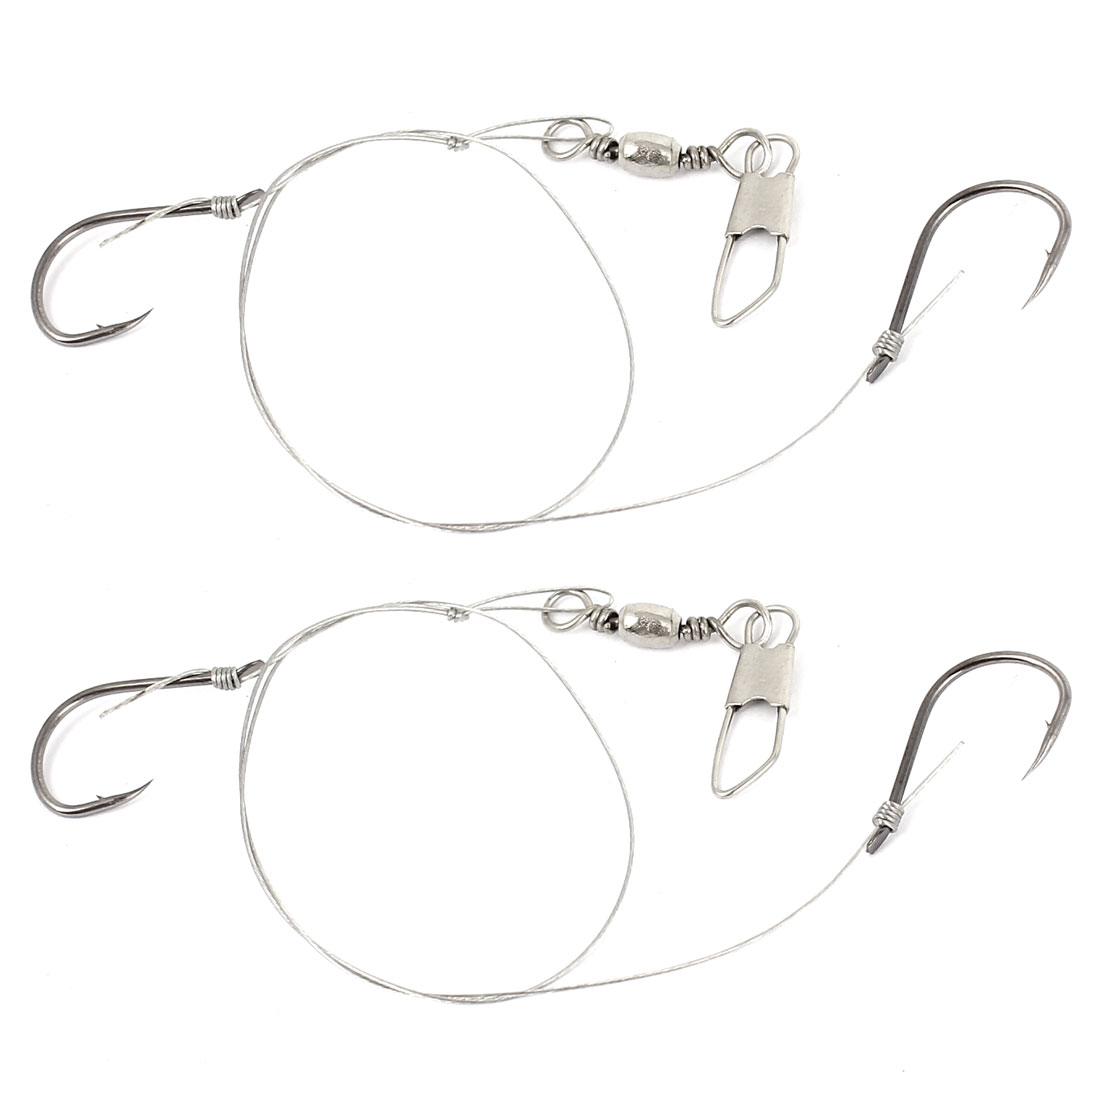 2 Pcs 2 in 1 Gray Bard Fish Hooks Fishhooks 11# w Interlock Clip